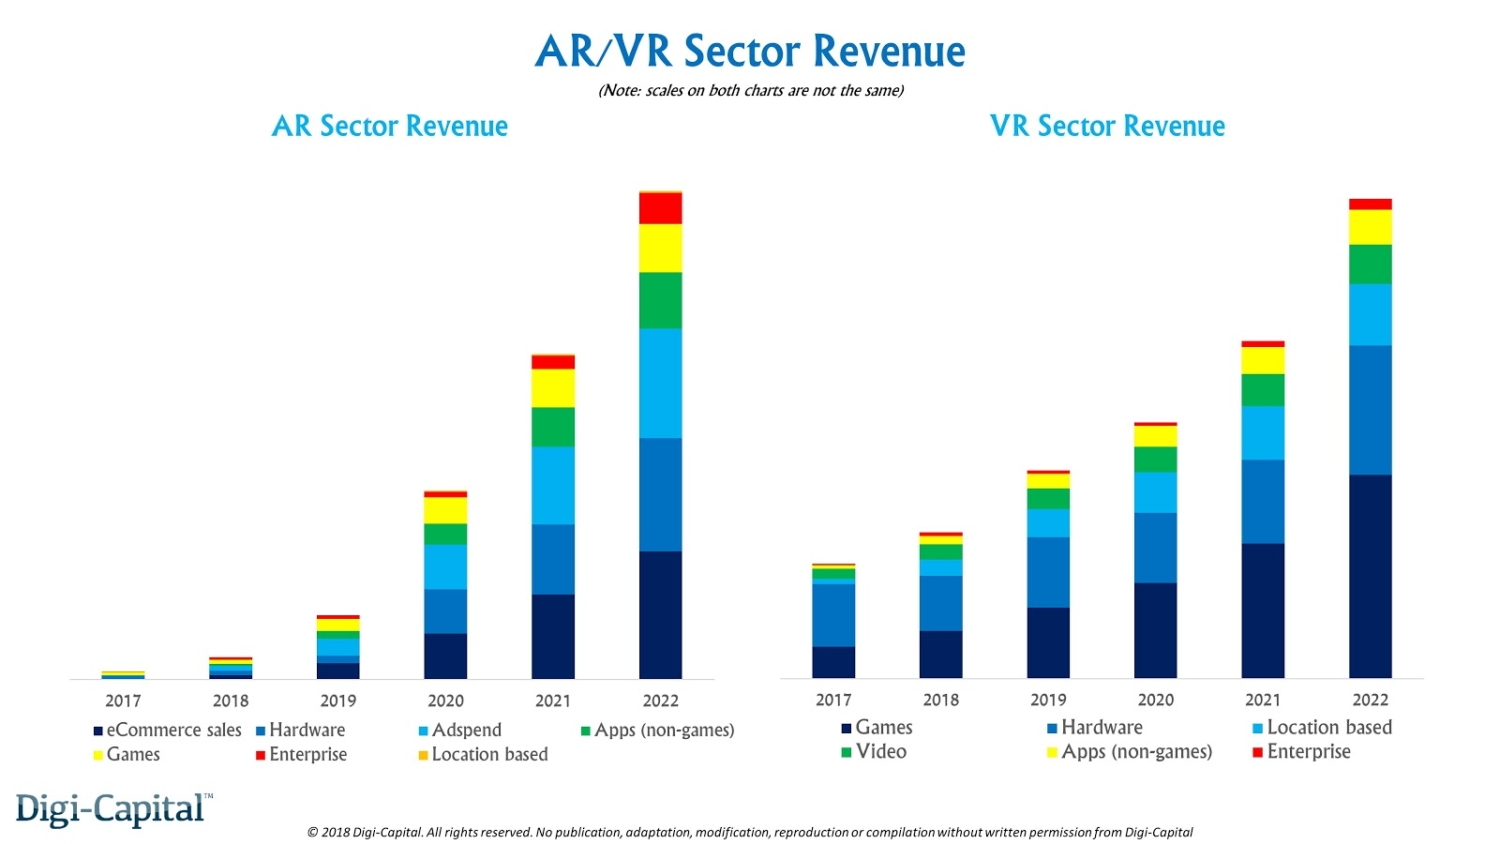 AR VR sector revenue